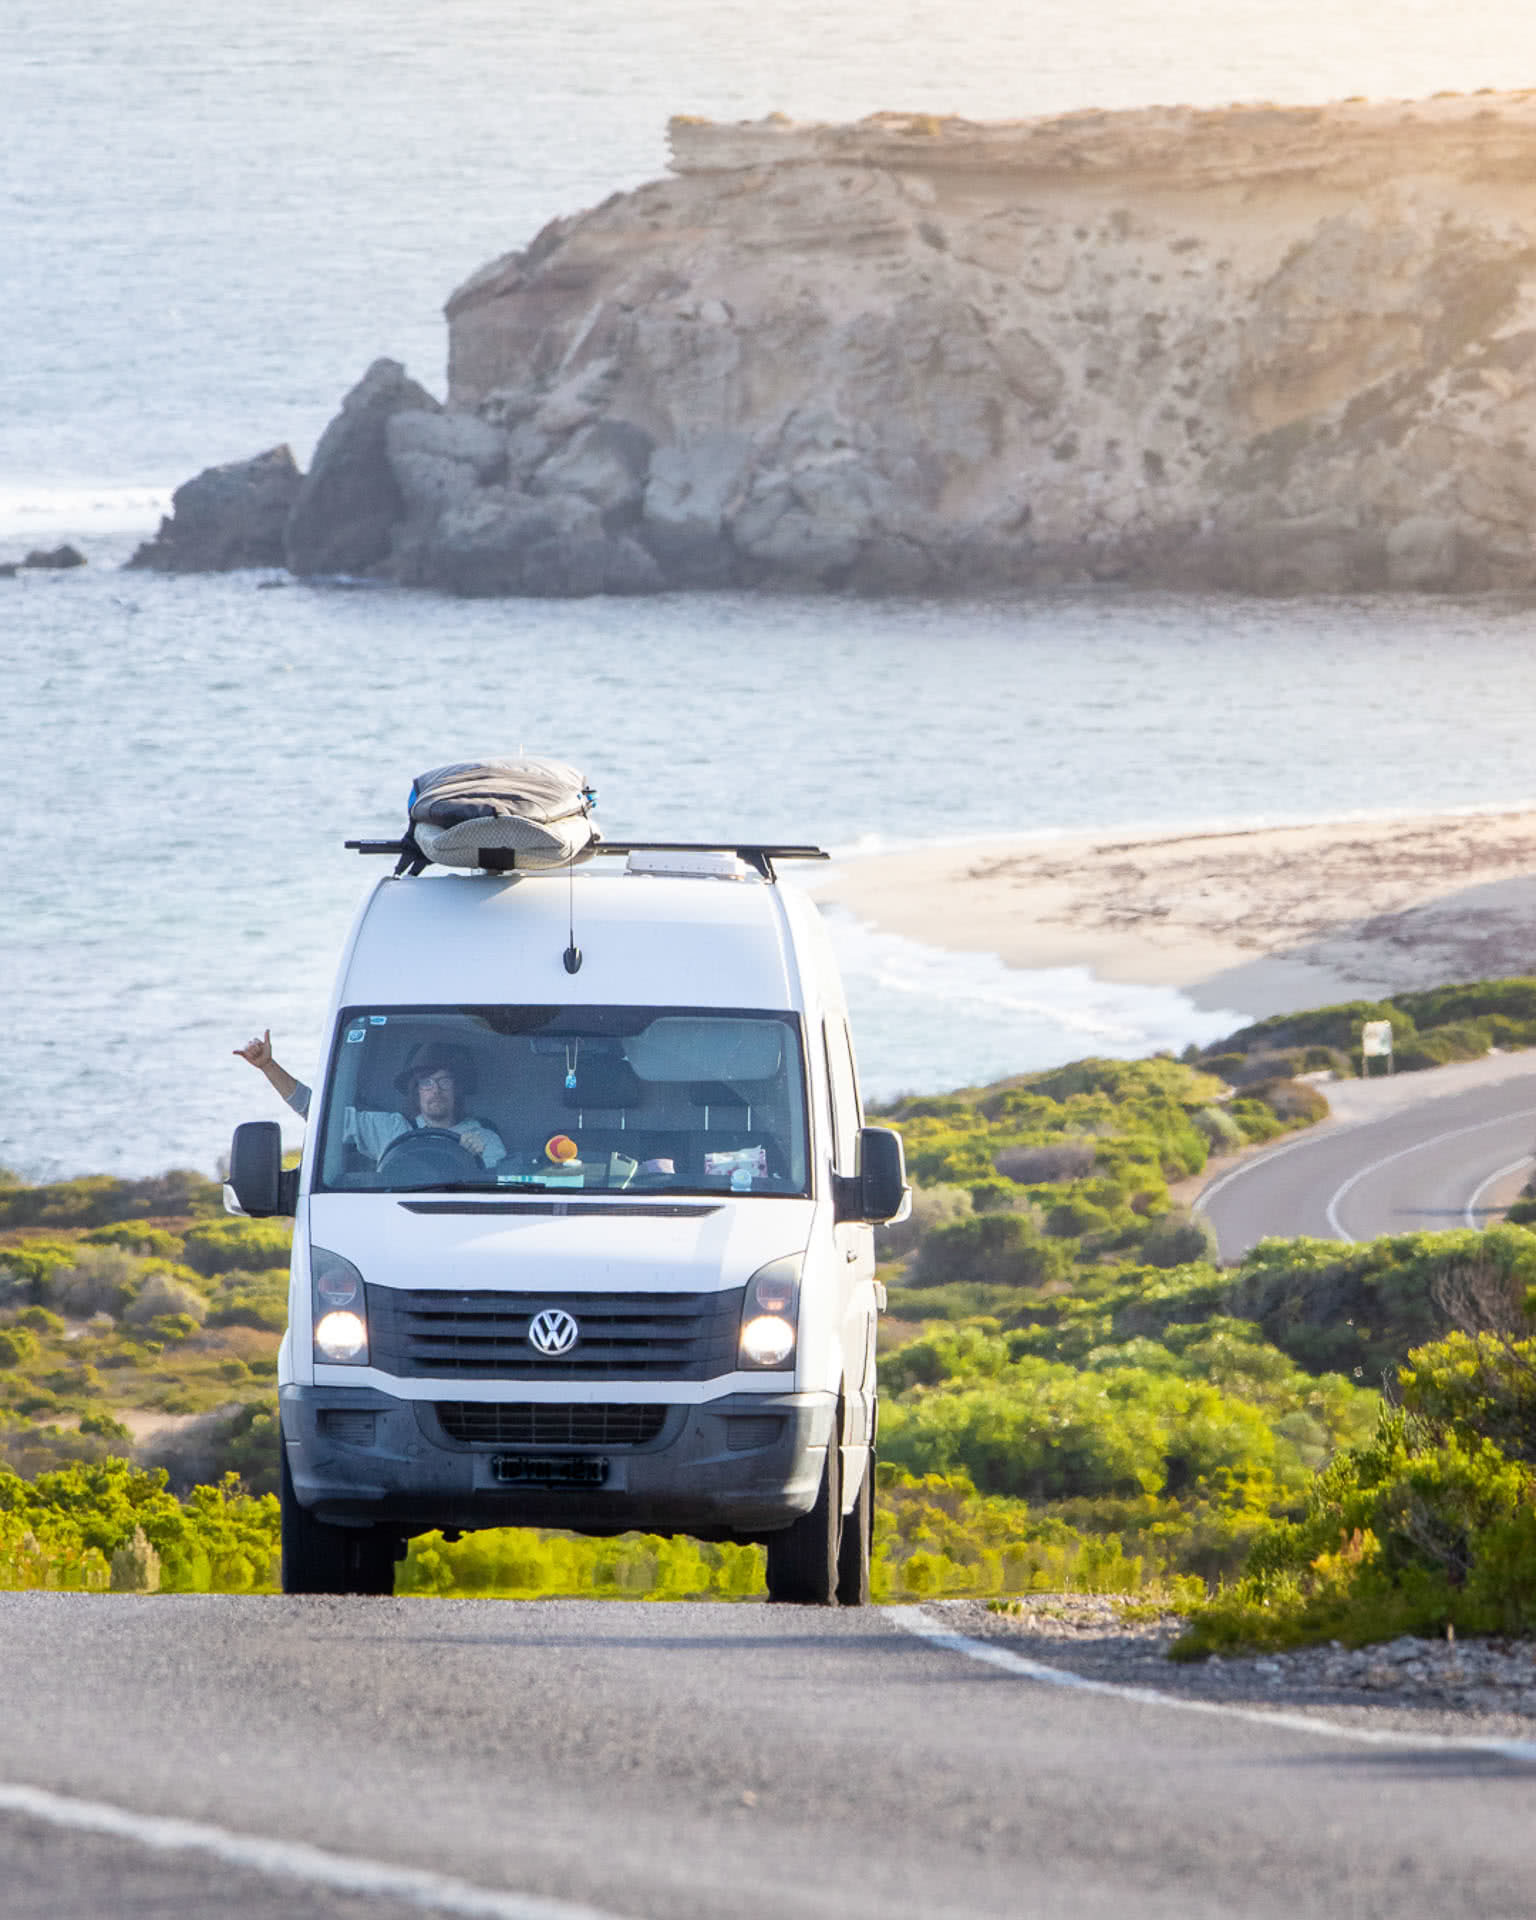 Stay Home Is the Order, but what if You're a Nomad?, photo by Ales Pokora, @framechasers, Eyre Peninsula, South Australia, van life